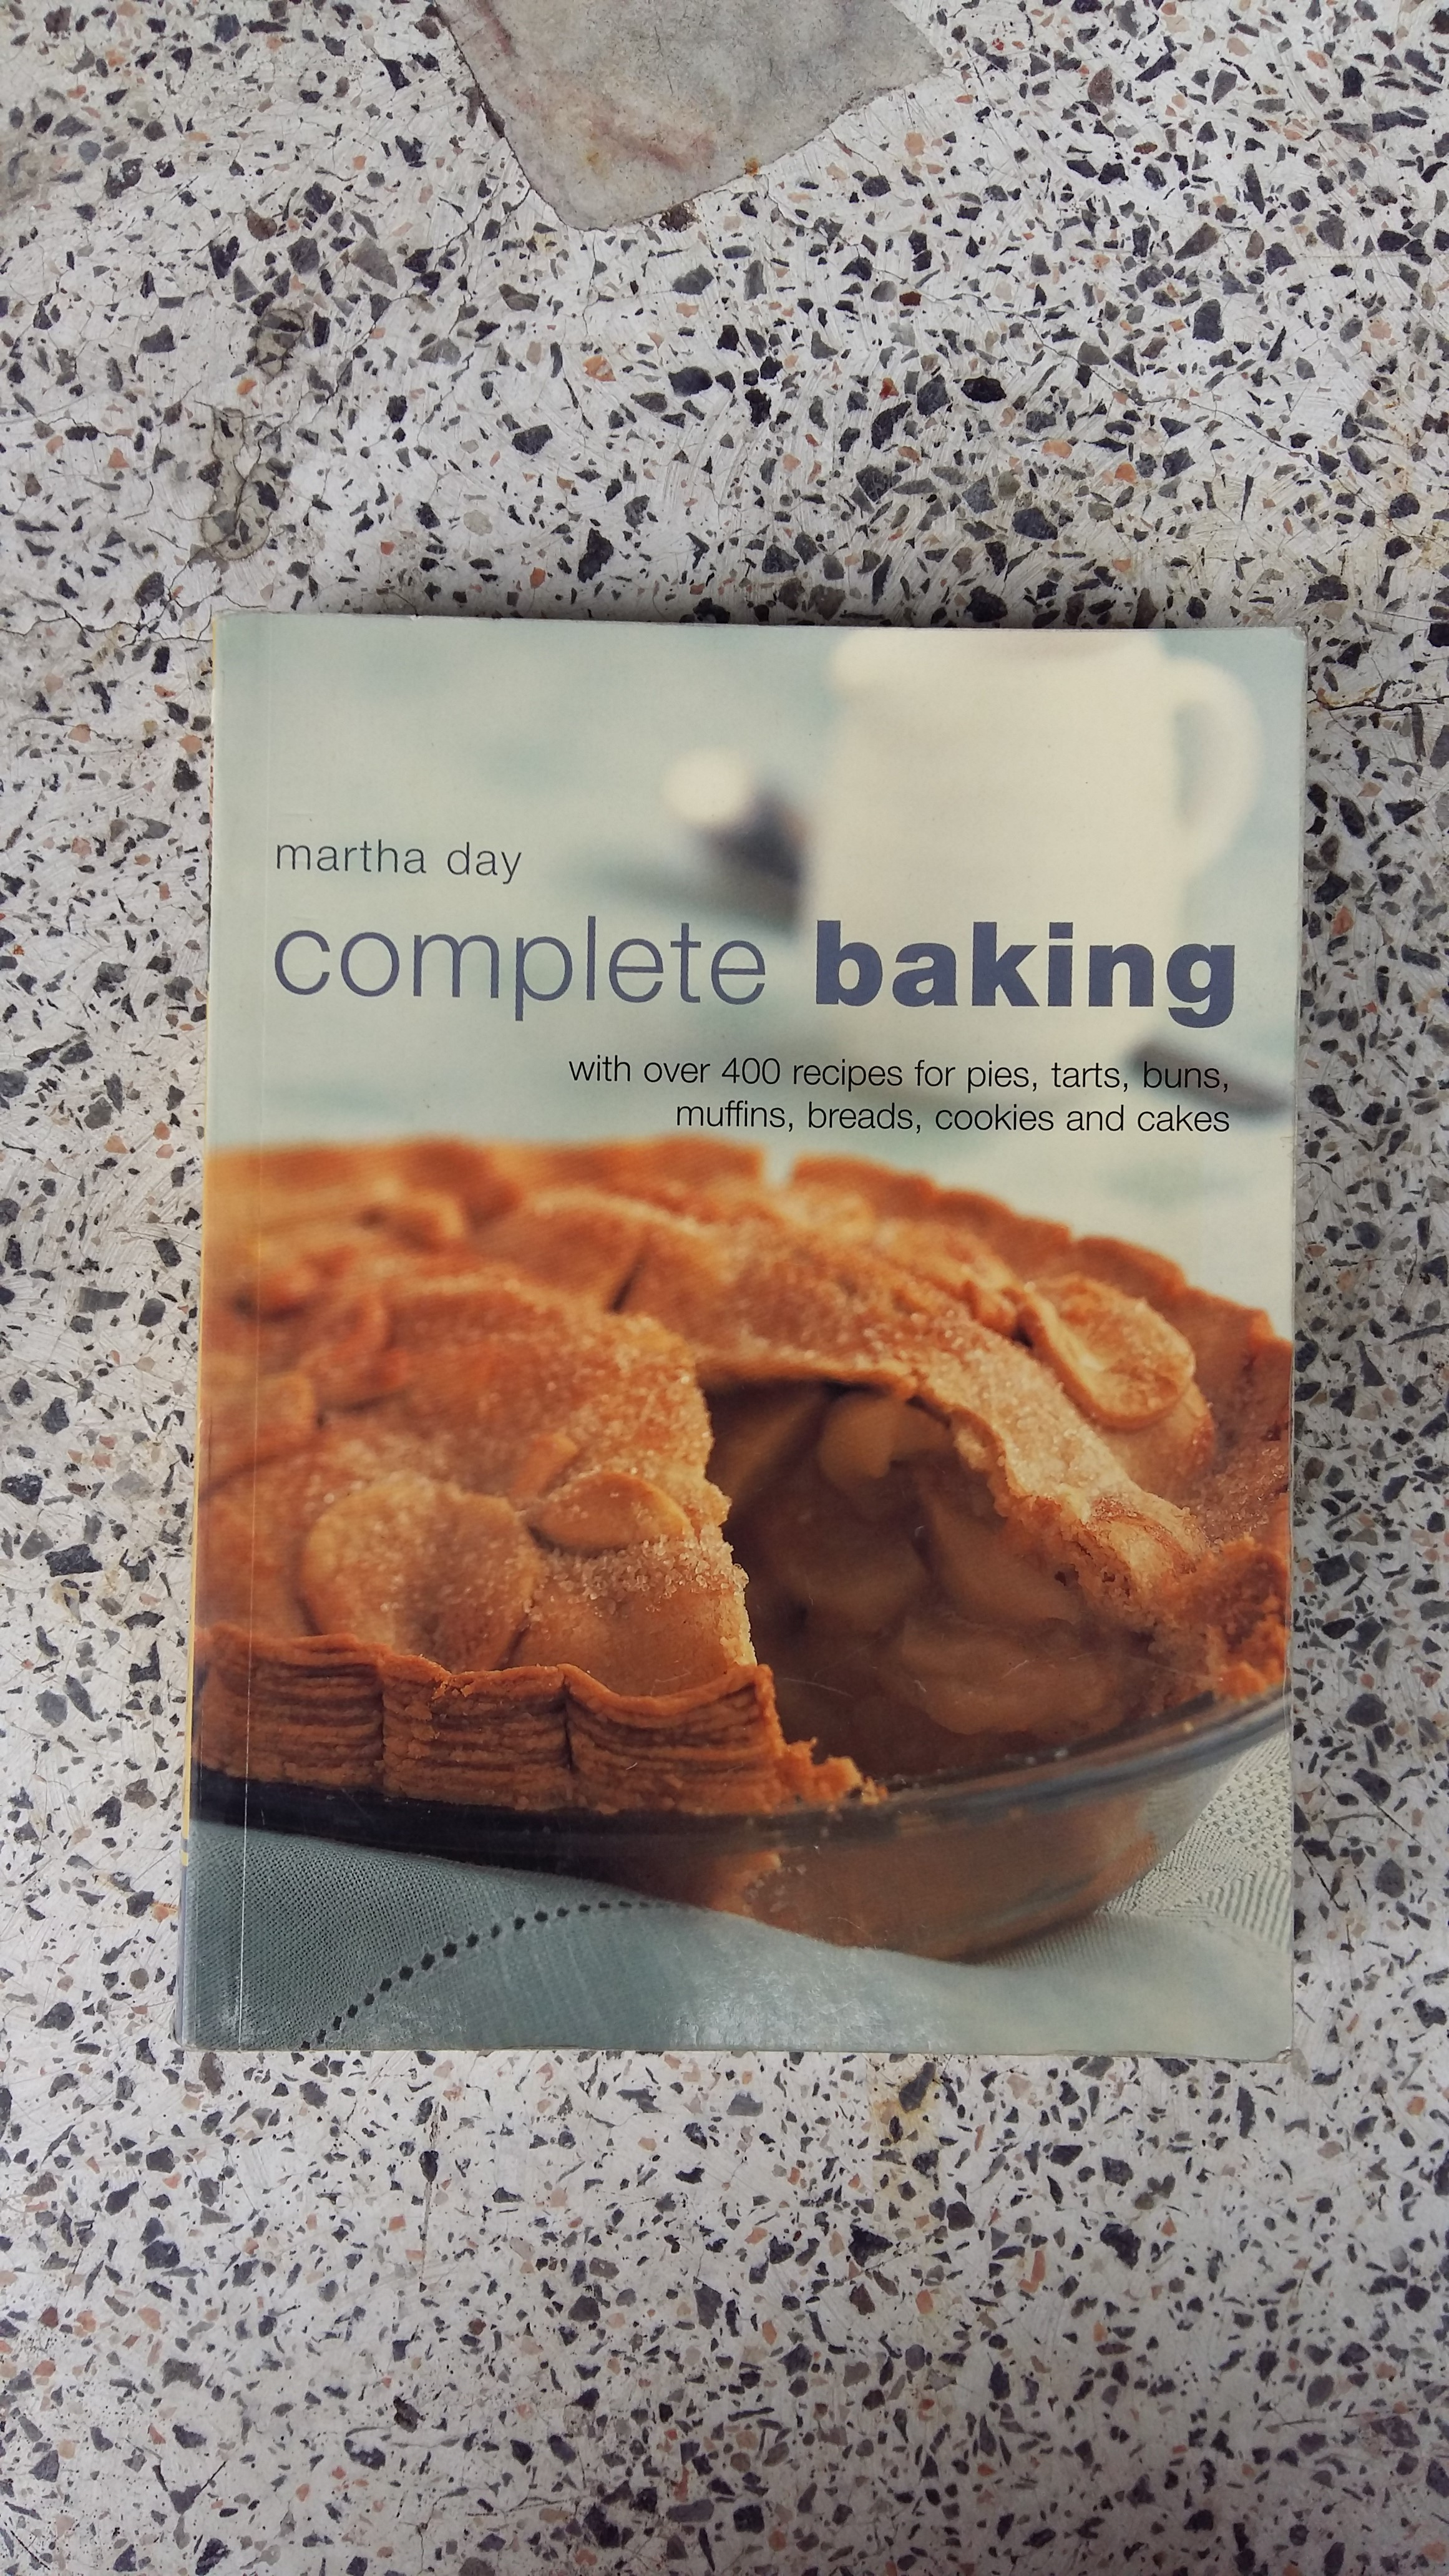 COMPLETE BAKING / MARTHA DAY